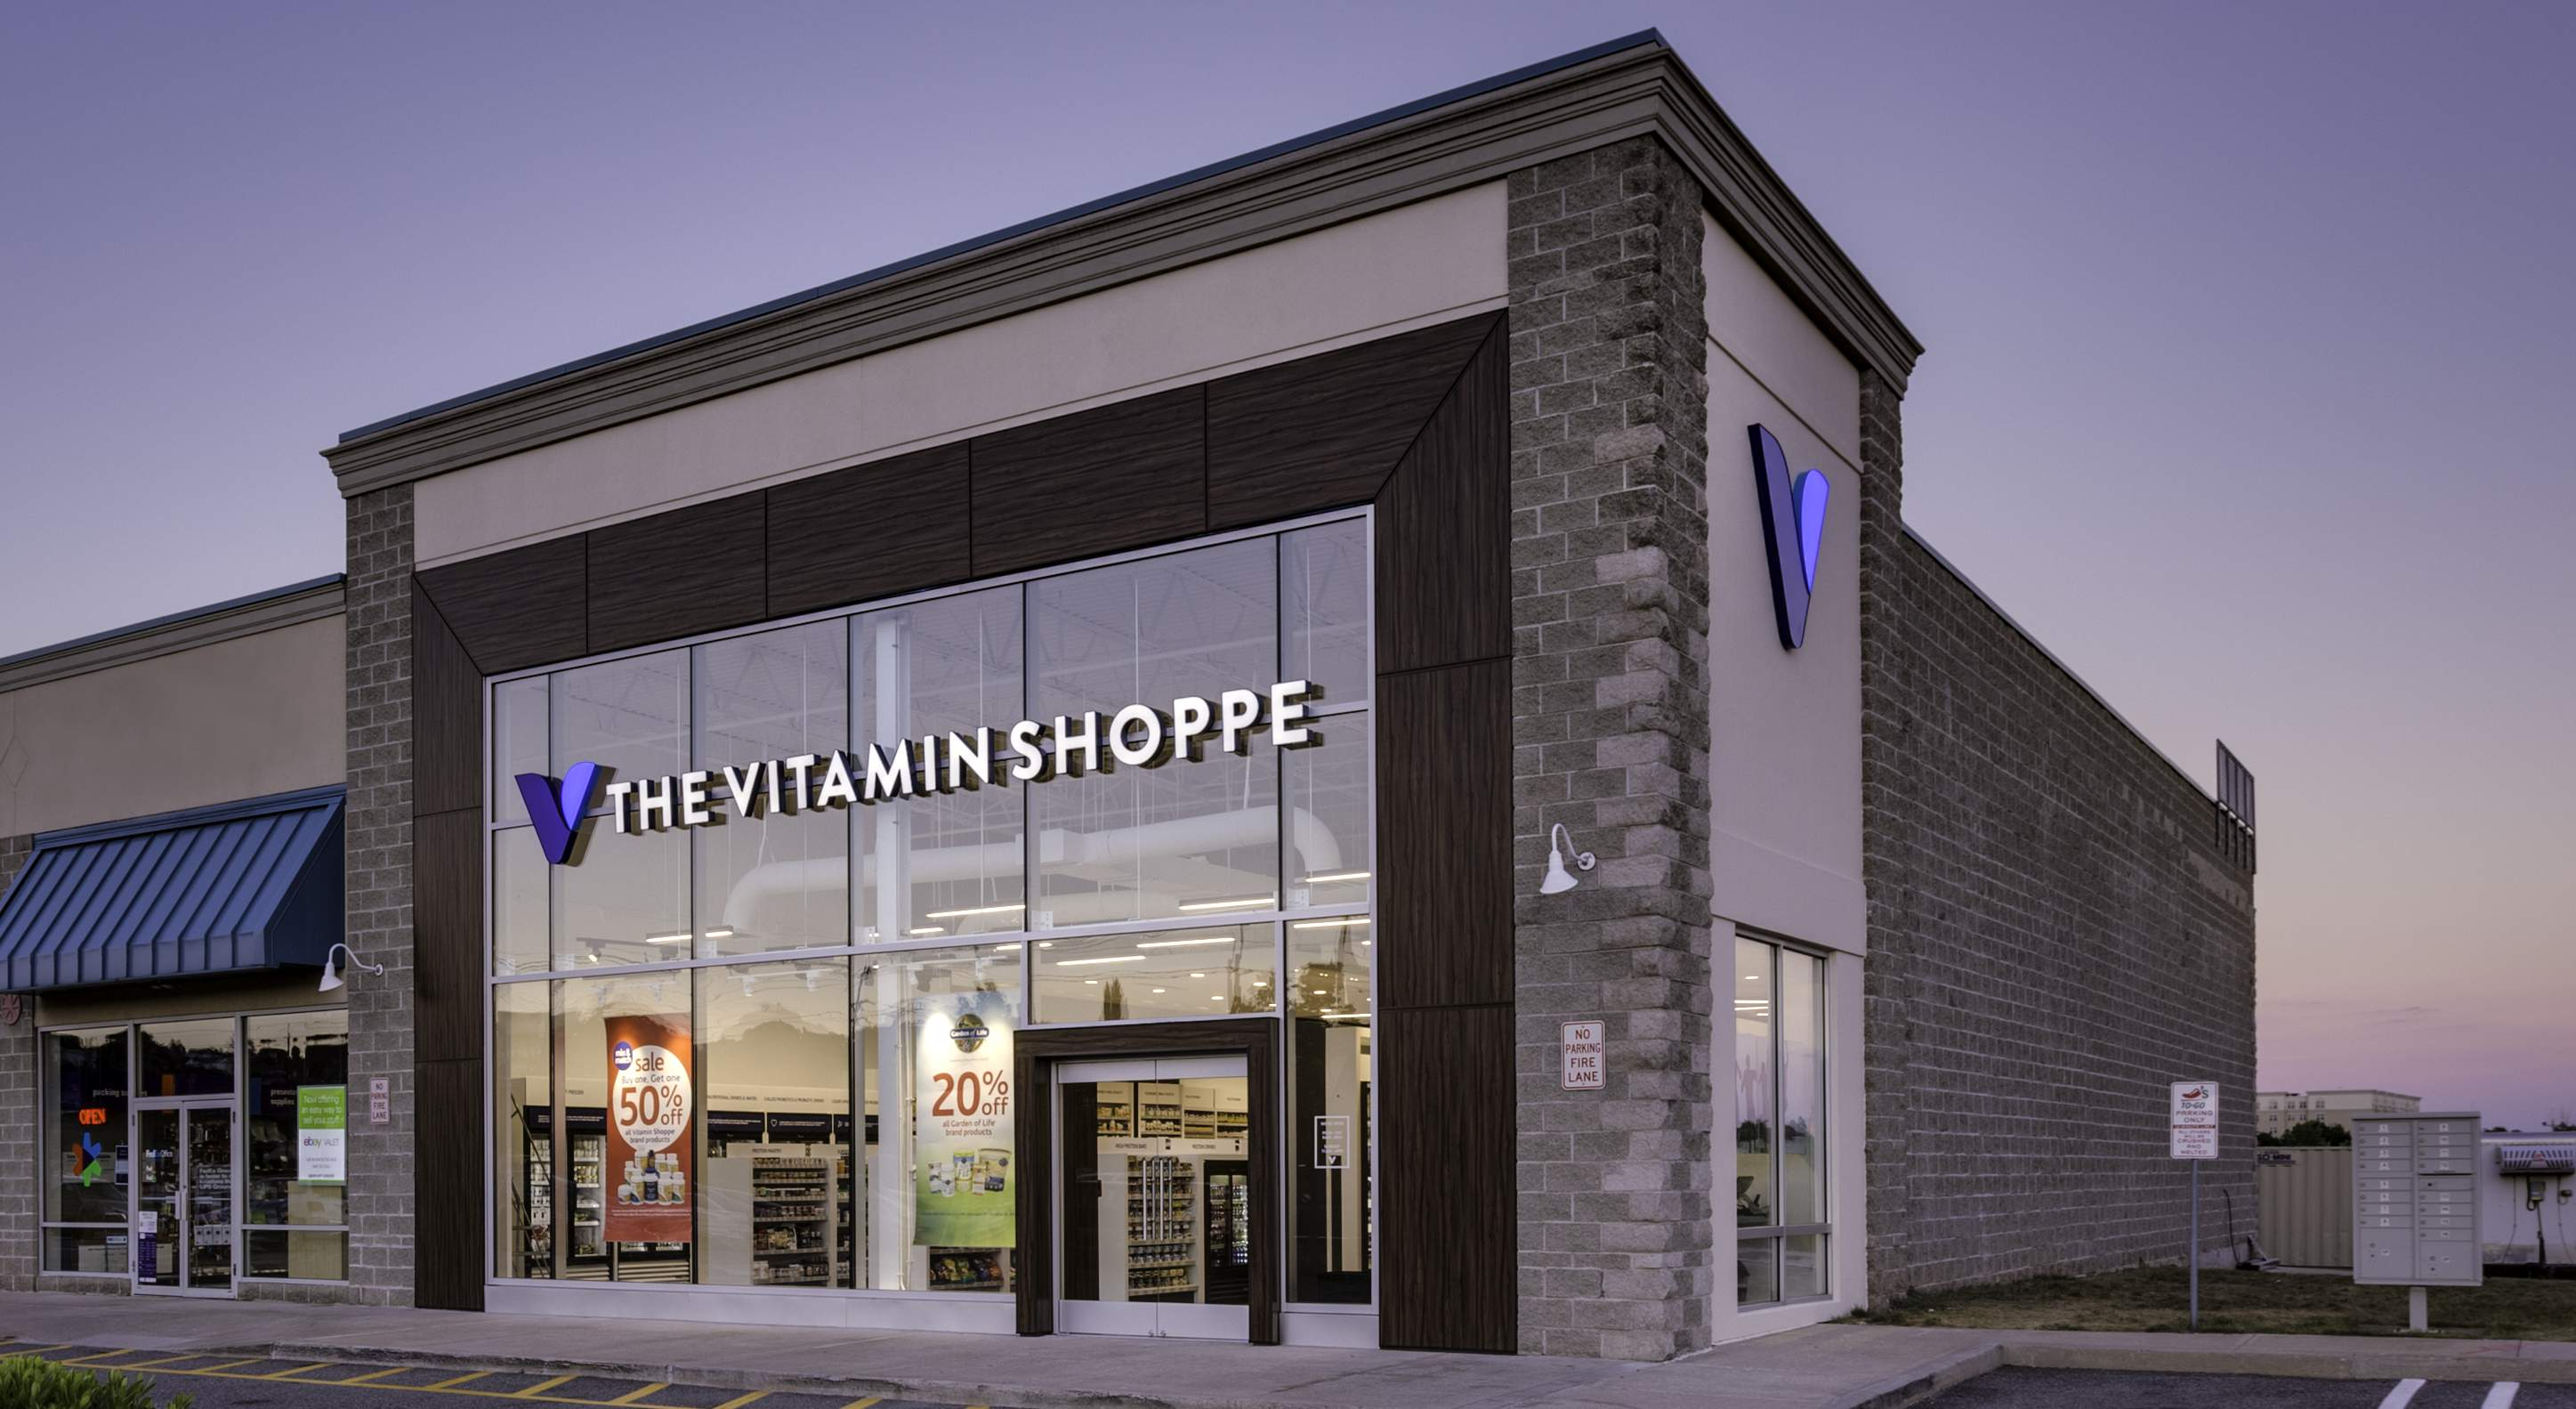 It was announced in august that Liberty Tax Inc. would acquire The Vitamin Shoppe for approximately $208 million. - THE VITAMIN SHOPPE INC.